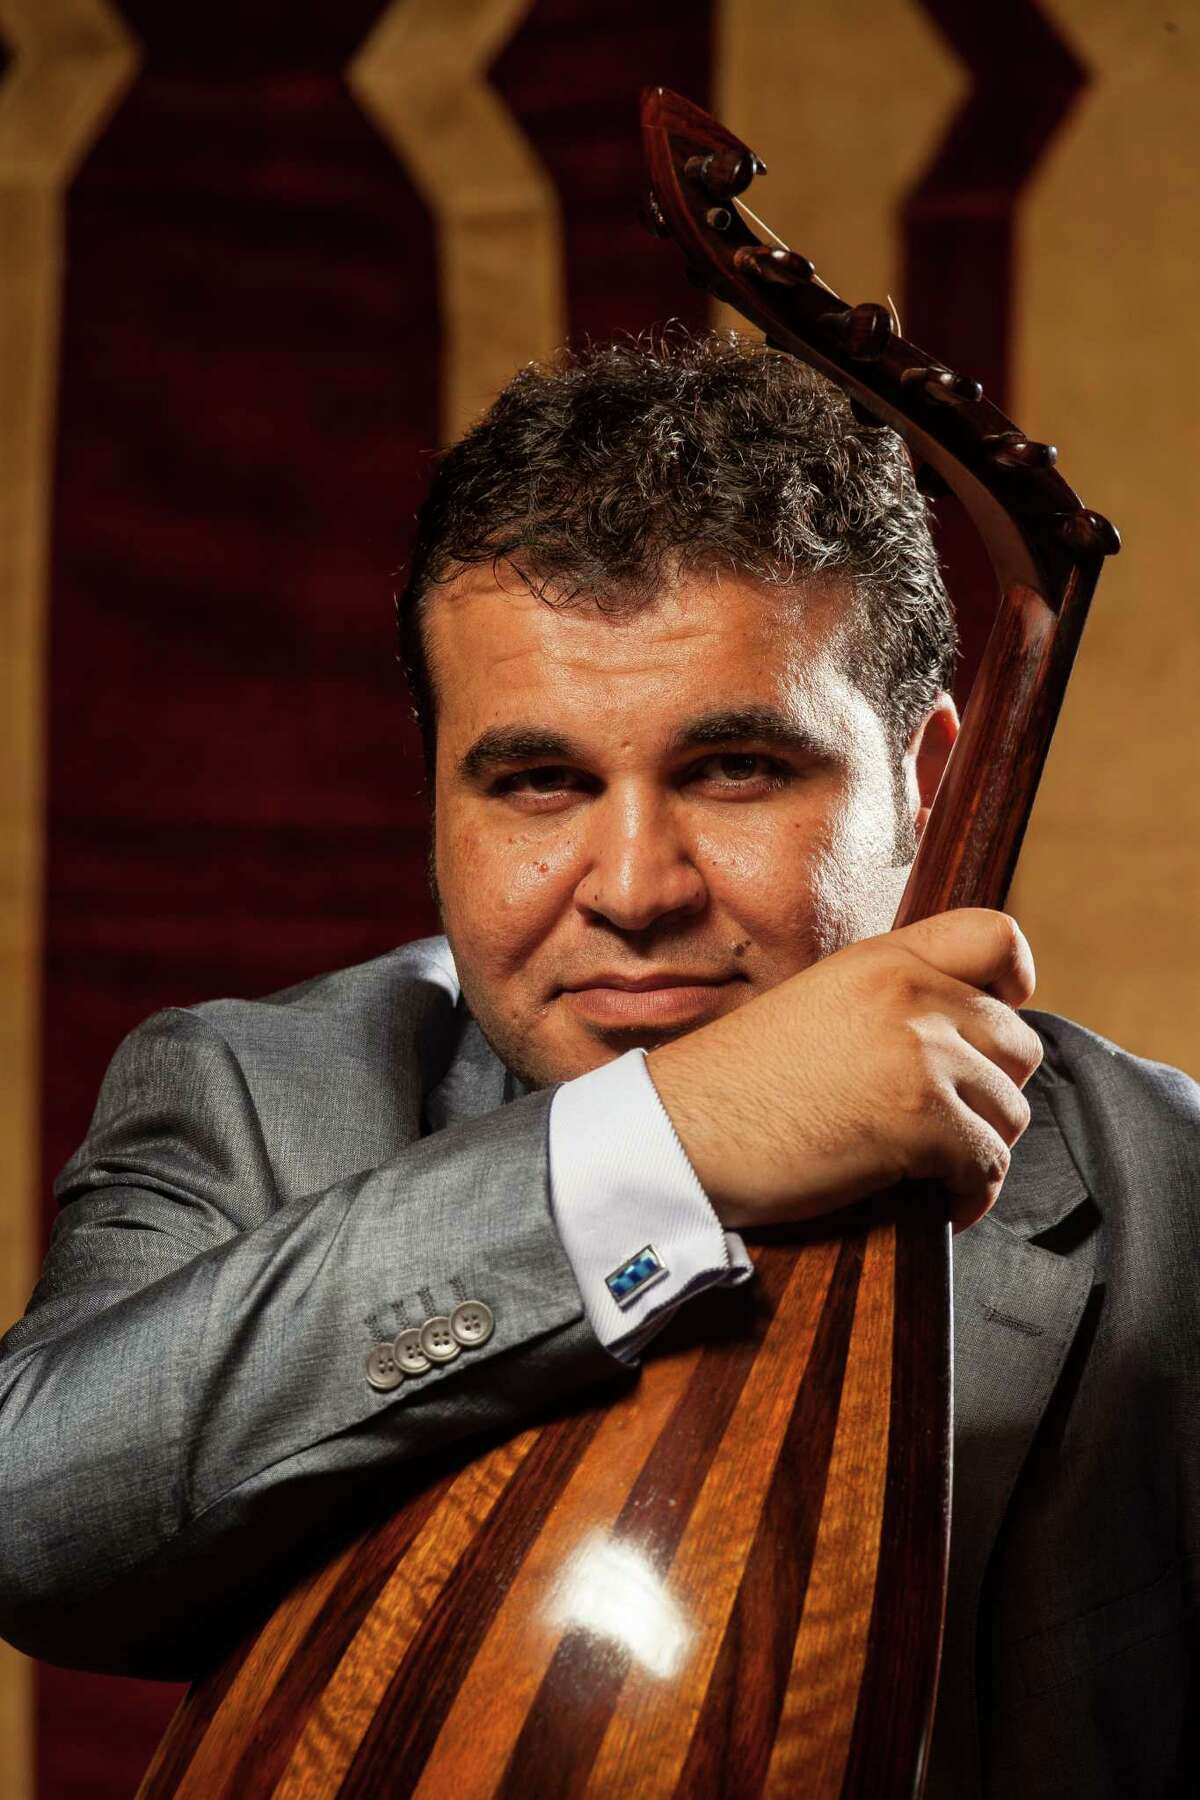 Zubair Al Awady, an Iraqi transplant who plays the oud, is among this weekend's performers.